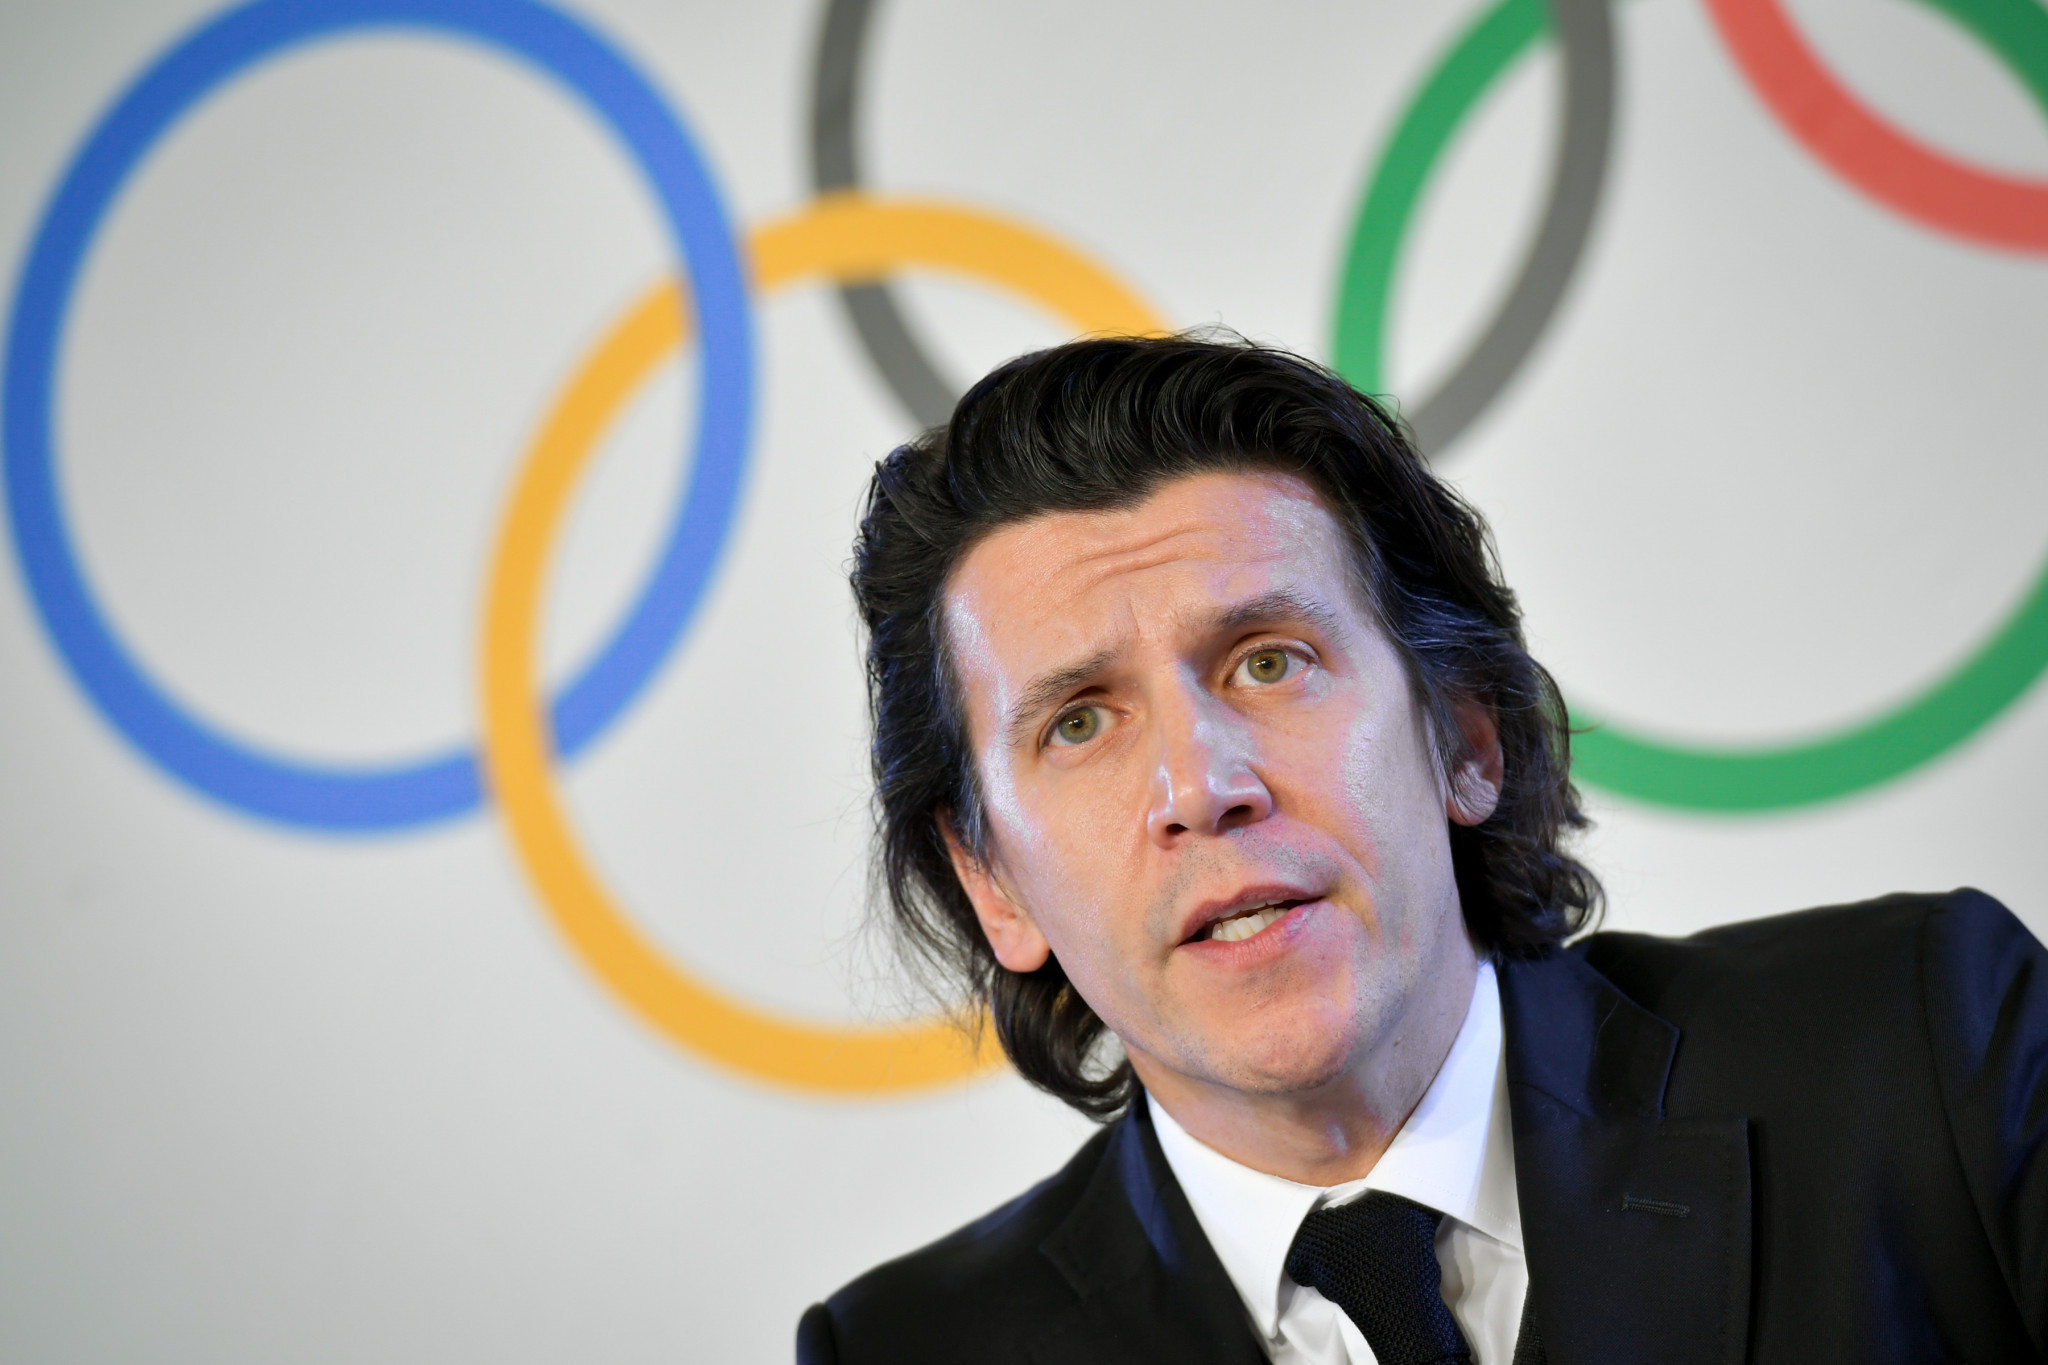 Christophe Dubi, IOC executive director for the Olympic Games, will participate in the event ©Getty Images